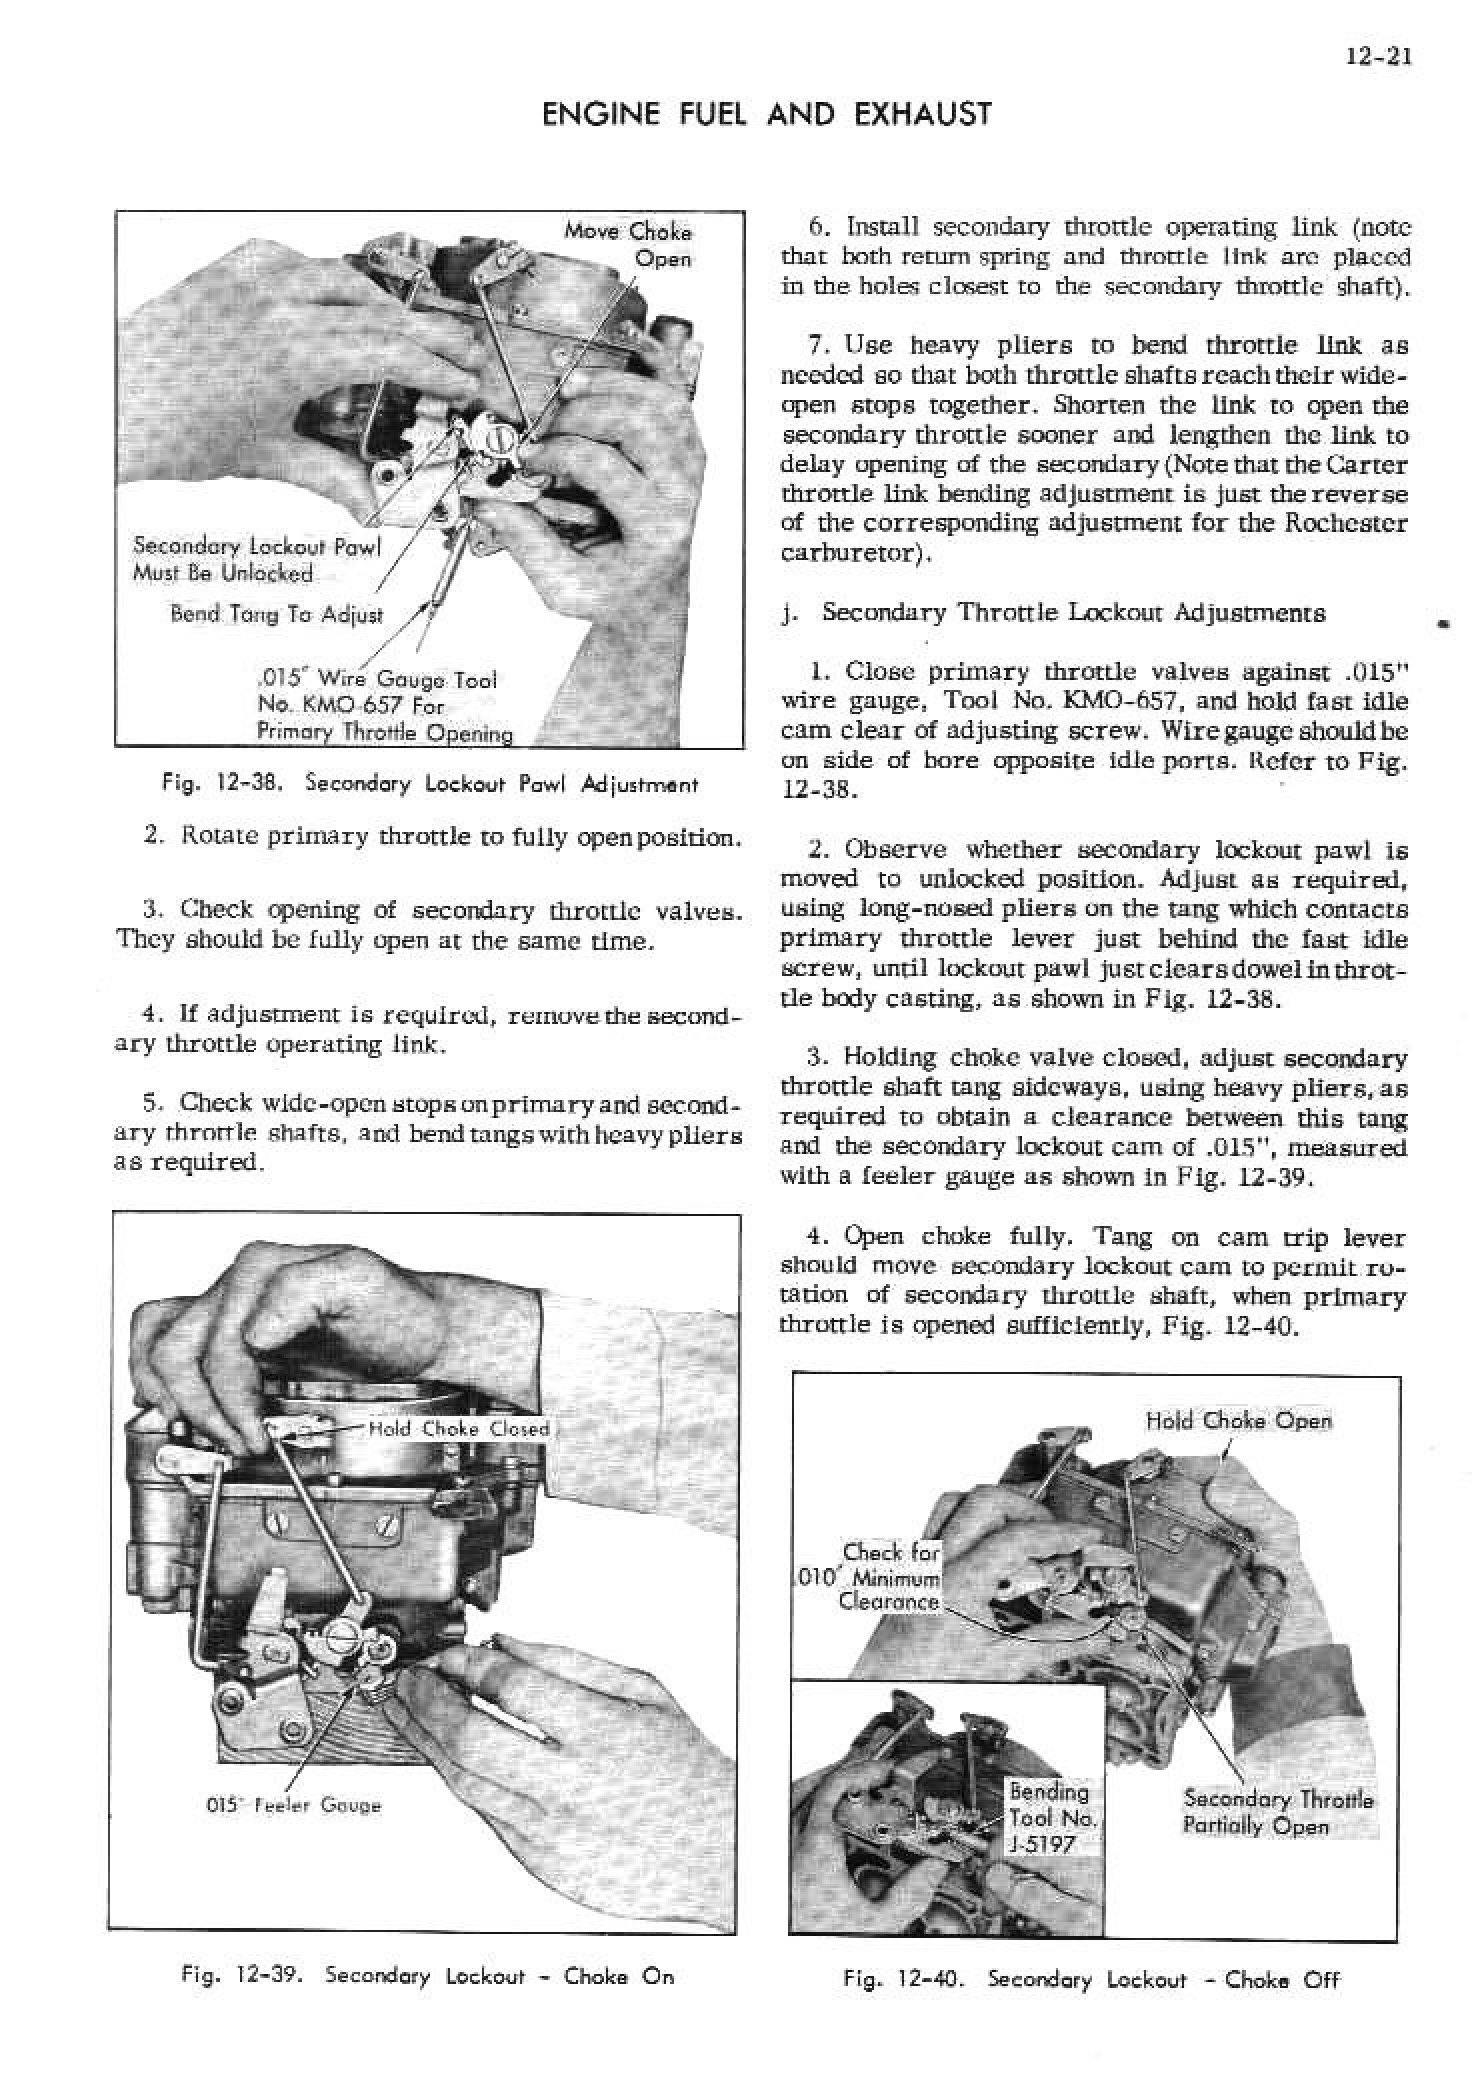 1952 Cadillac Shop Manual- Engine Fuel and Exhaust Page 21